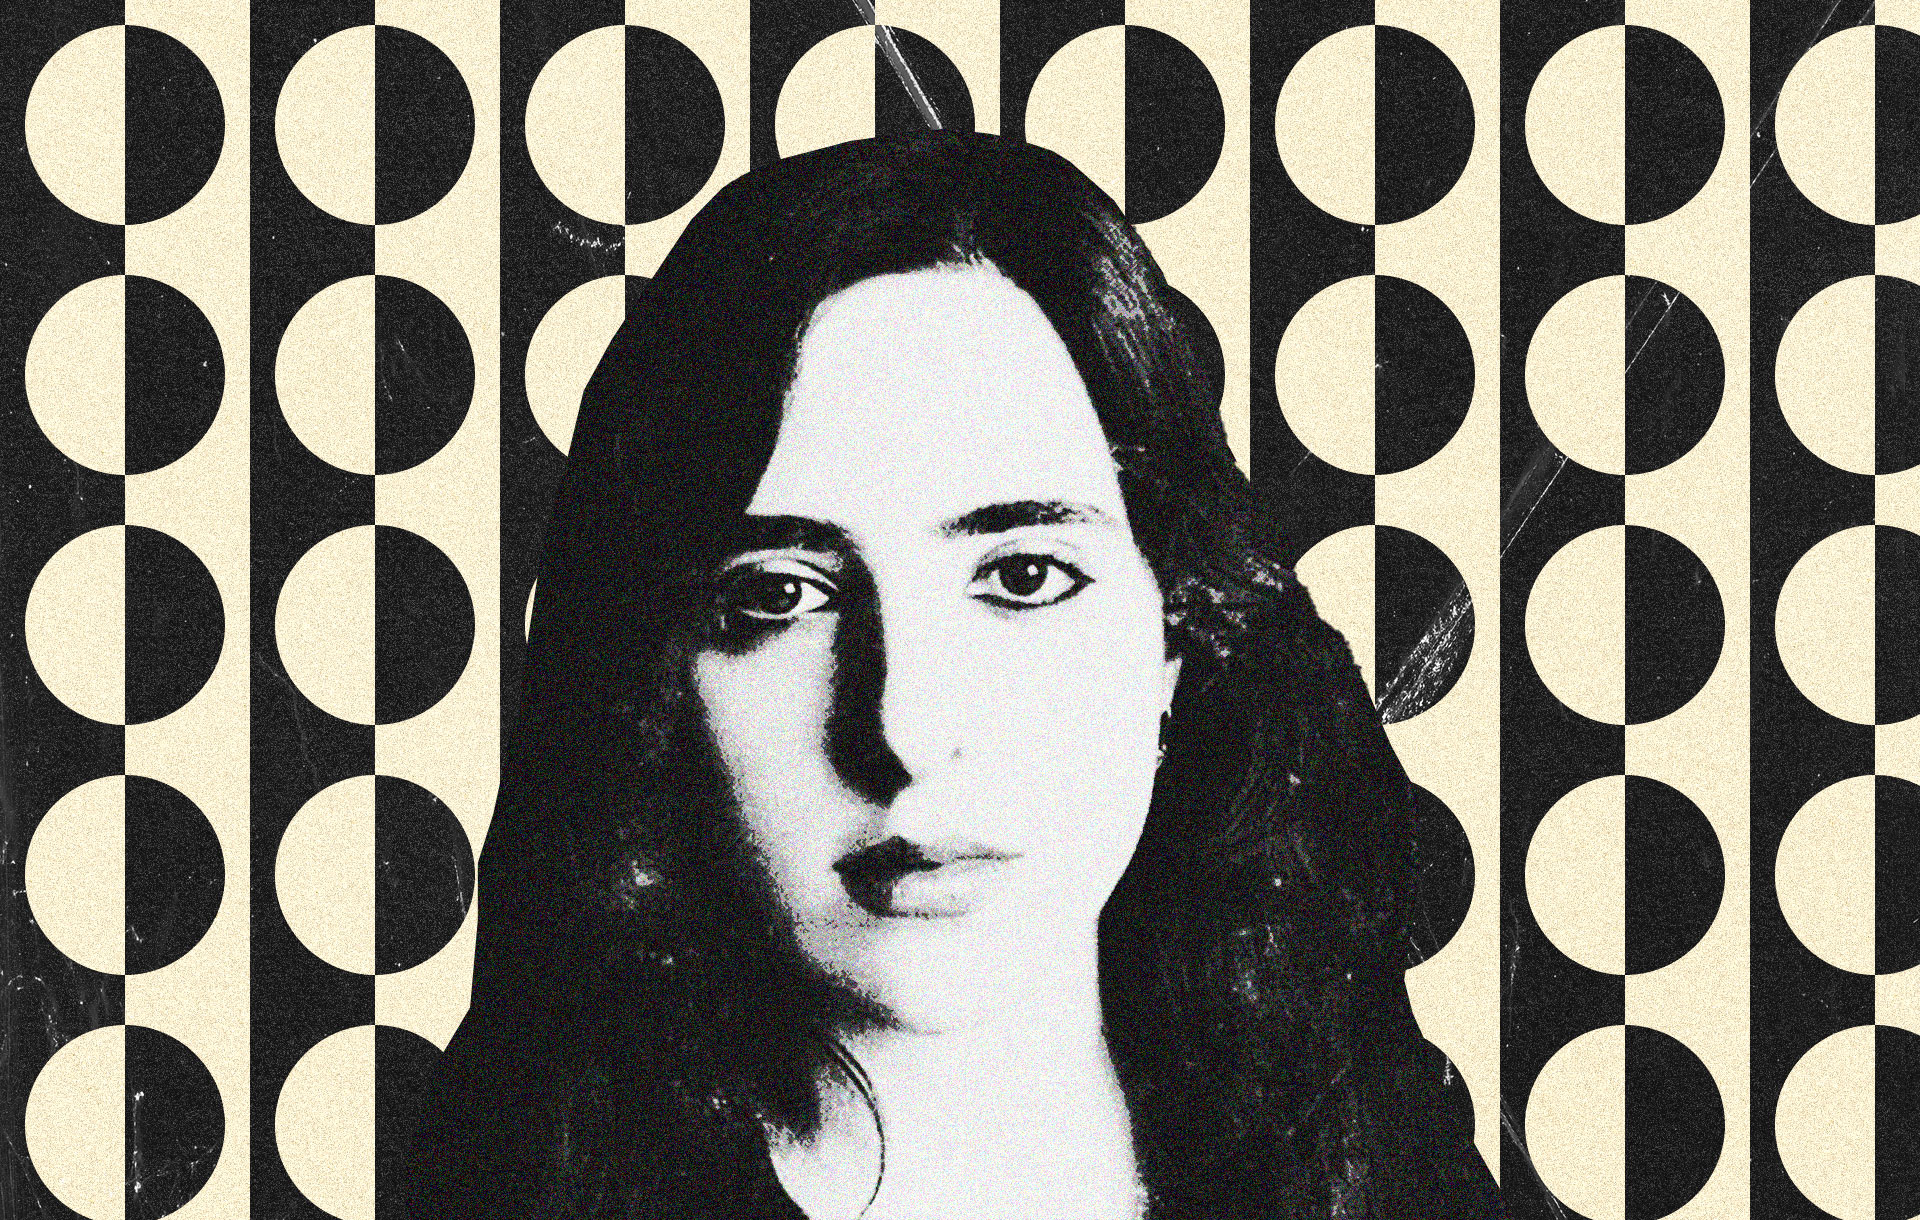 Laura Nyro - One Of Music's Greatest (Un)Sung Songwriters   Features   LIVING LIFE FEARLESS